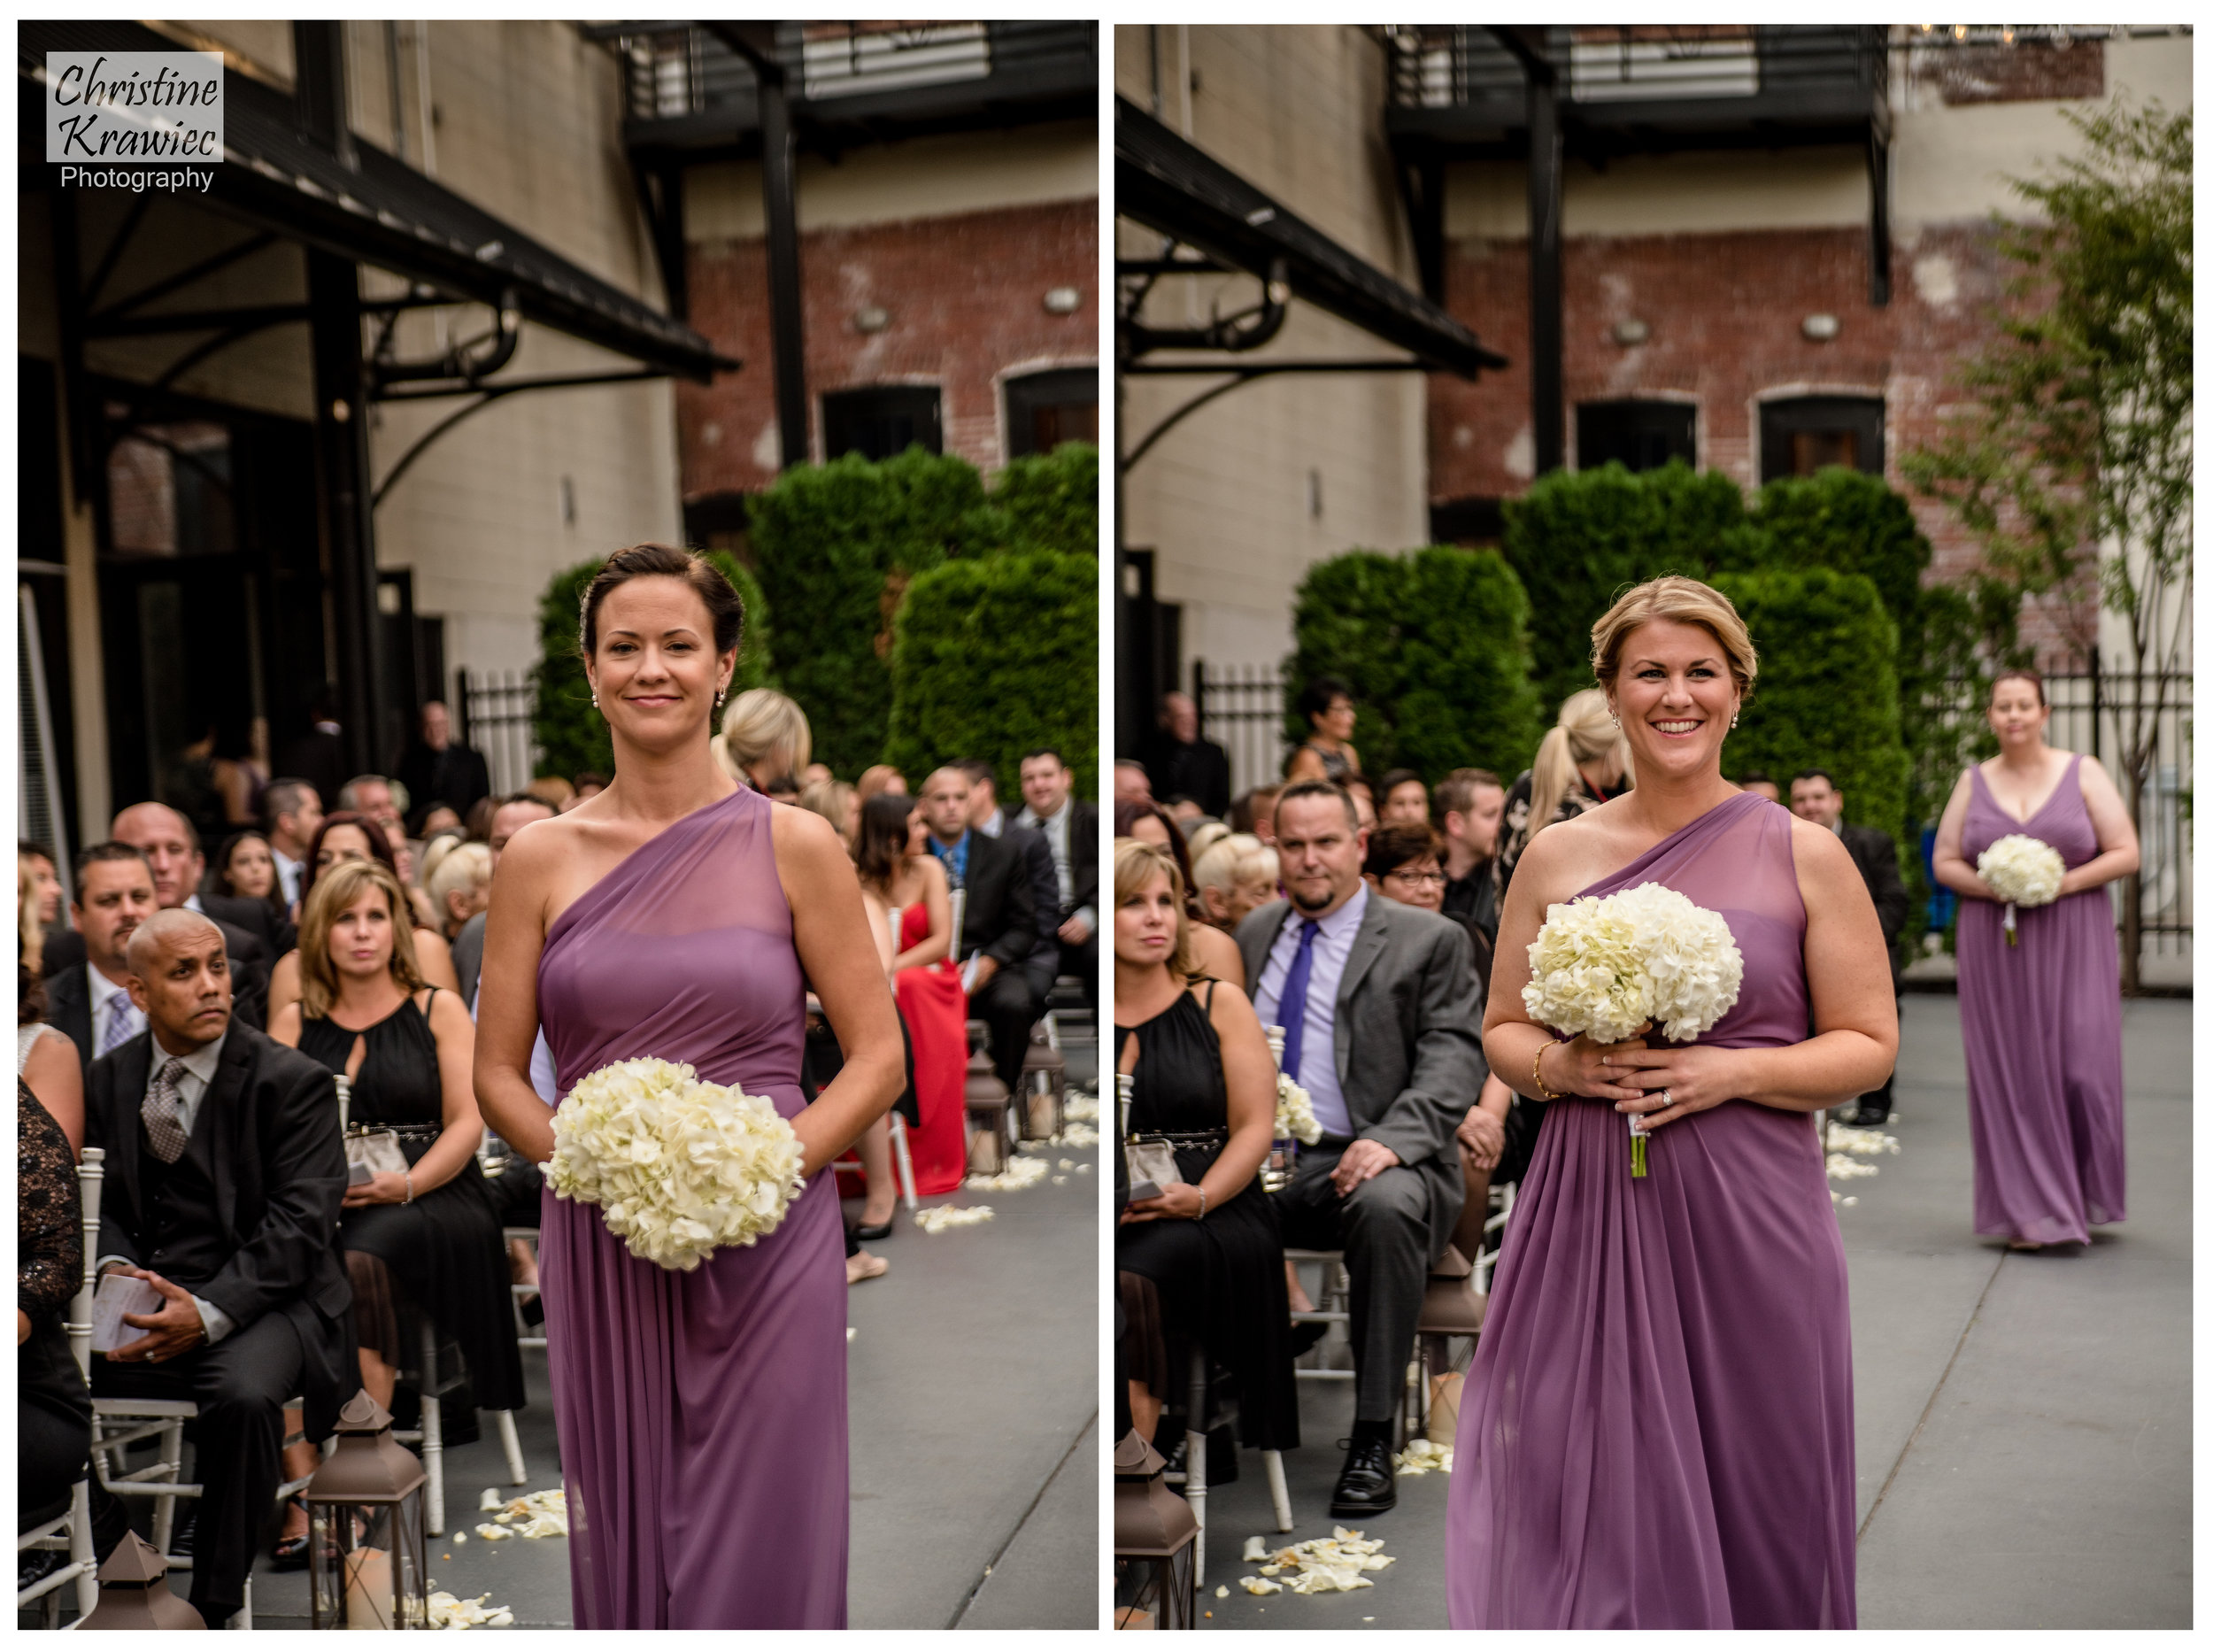 Ladies in purple making their way down the aisle